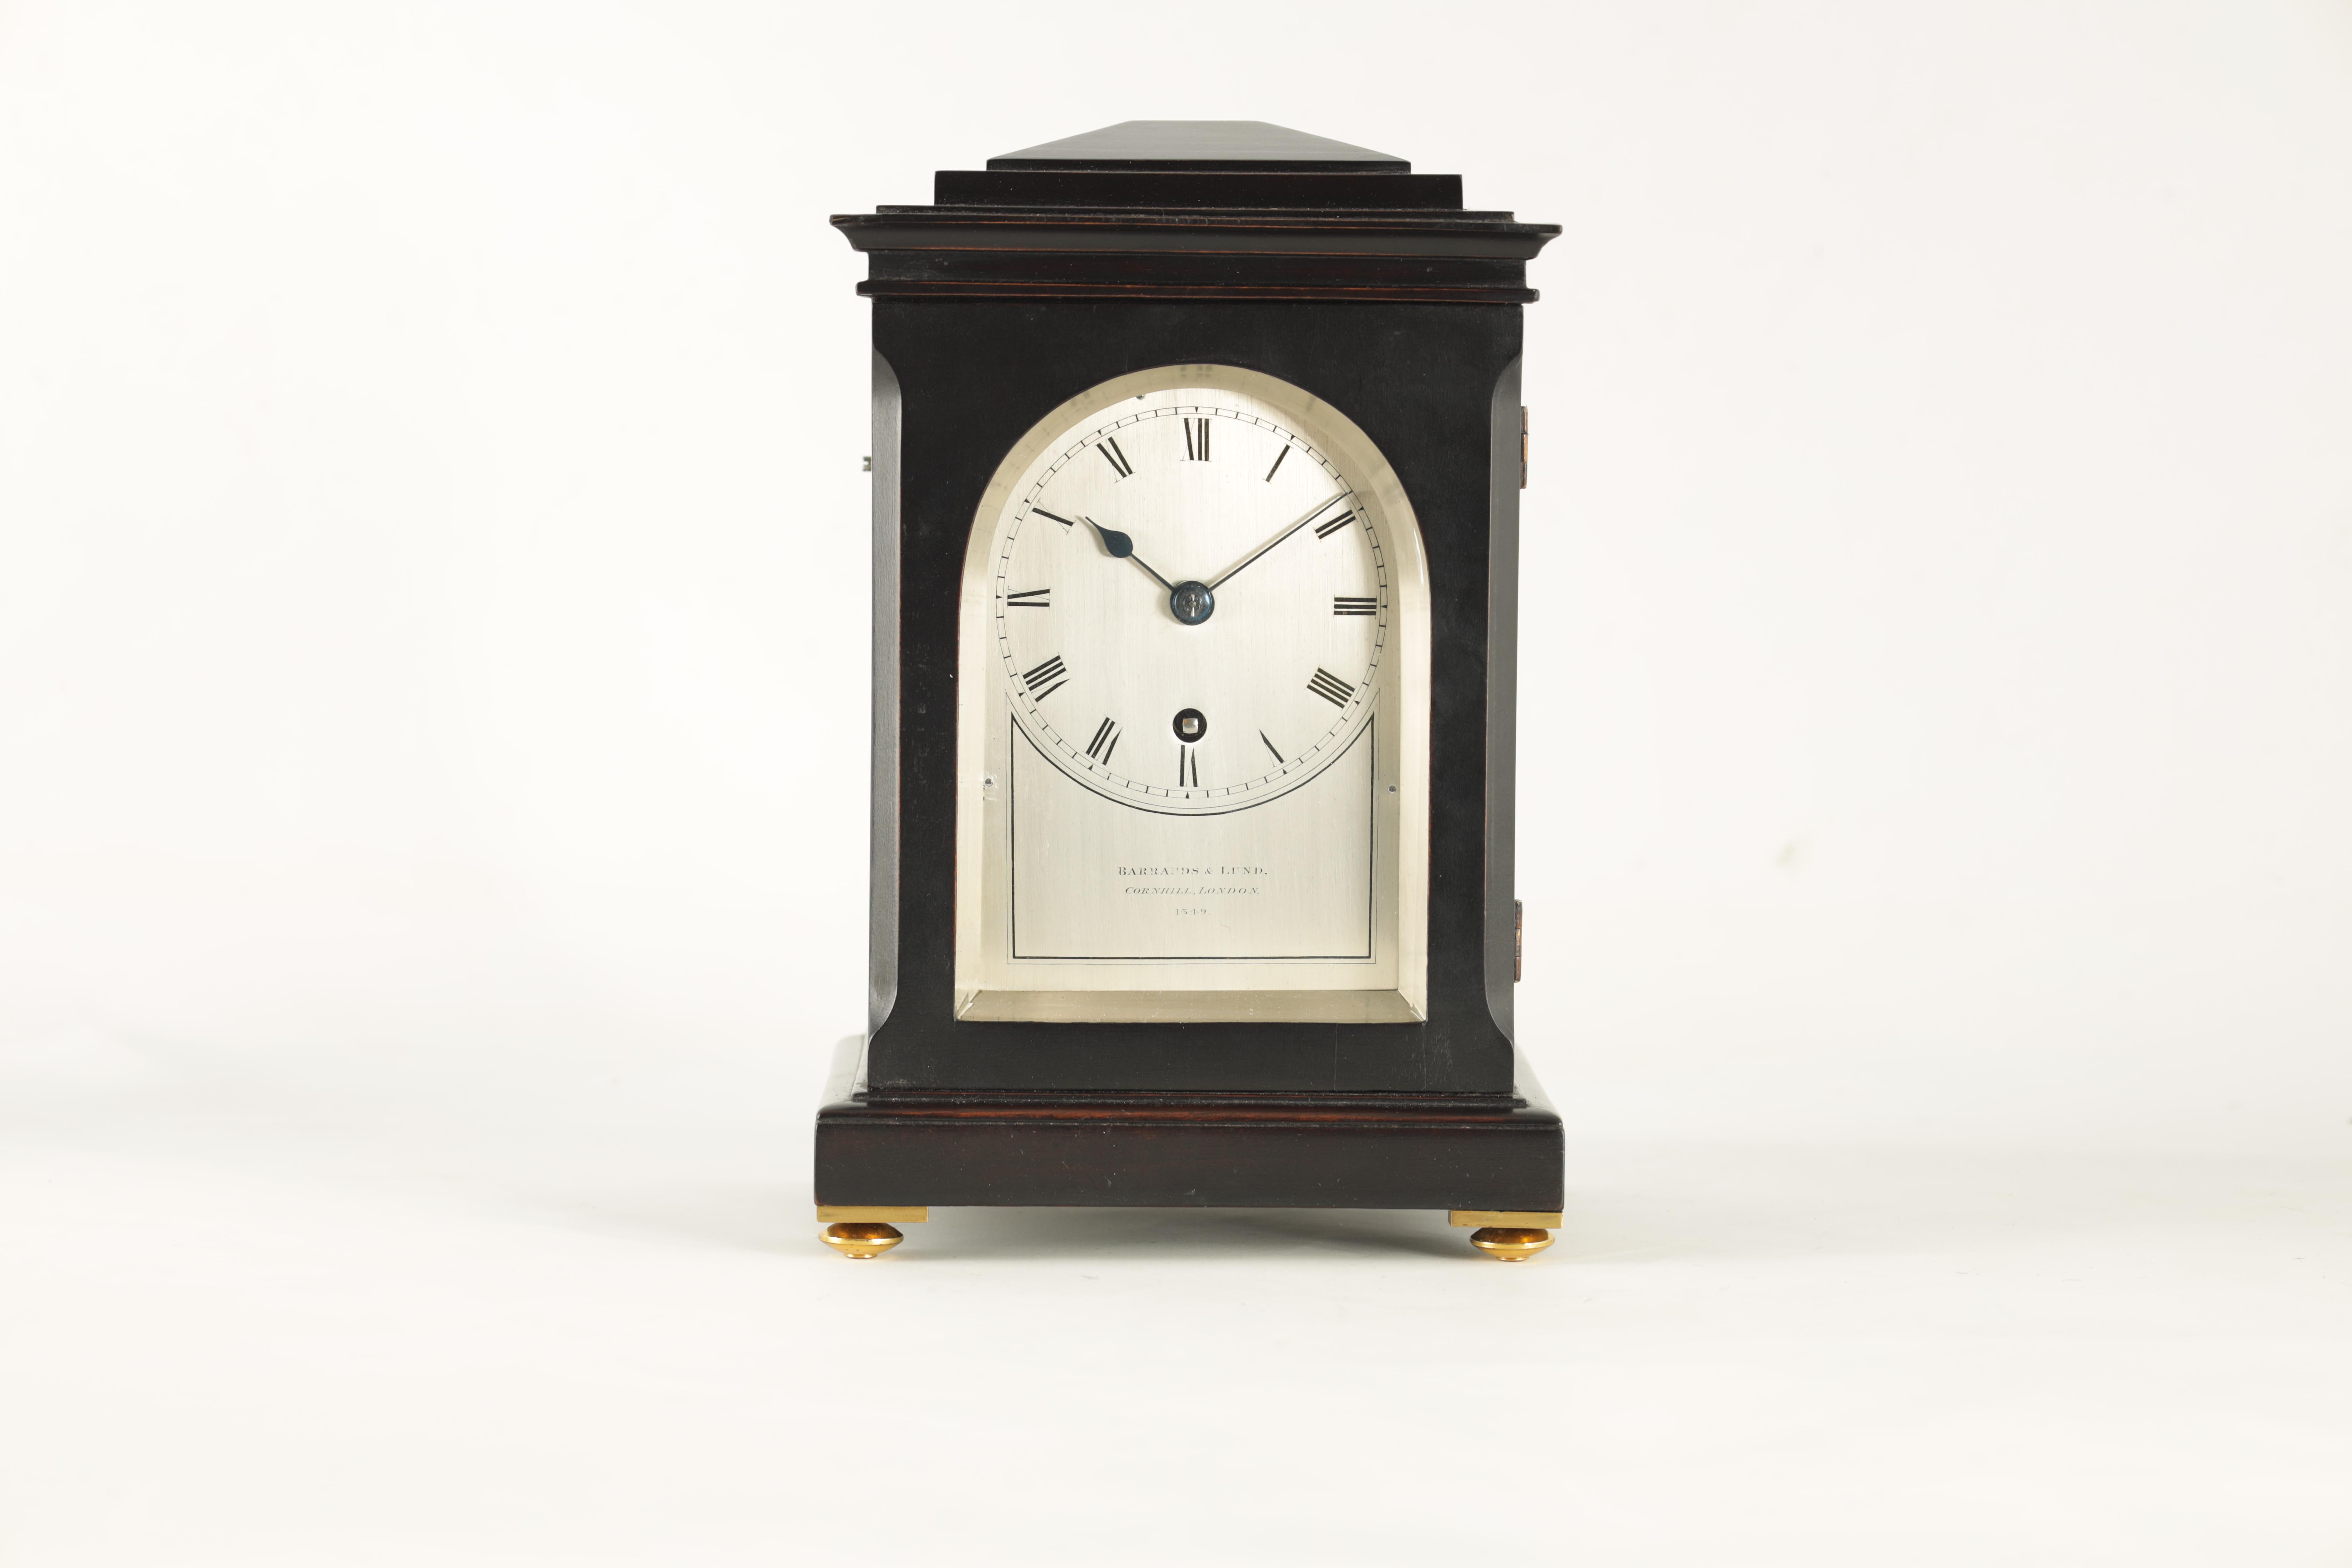 BARRAUDS & LUND, CORNHILL, LONDON. 1549 A FINE EARLY 19TH CENTURY REGENCY EBONISED ENGLISH FUSEE - Image 3 of 8